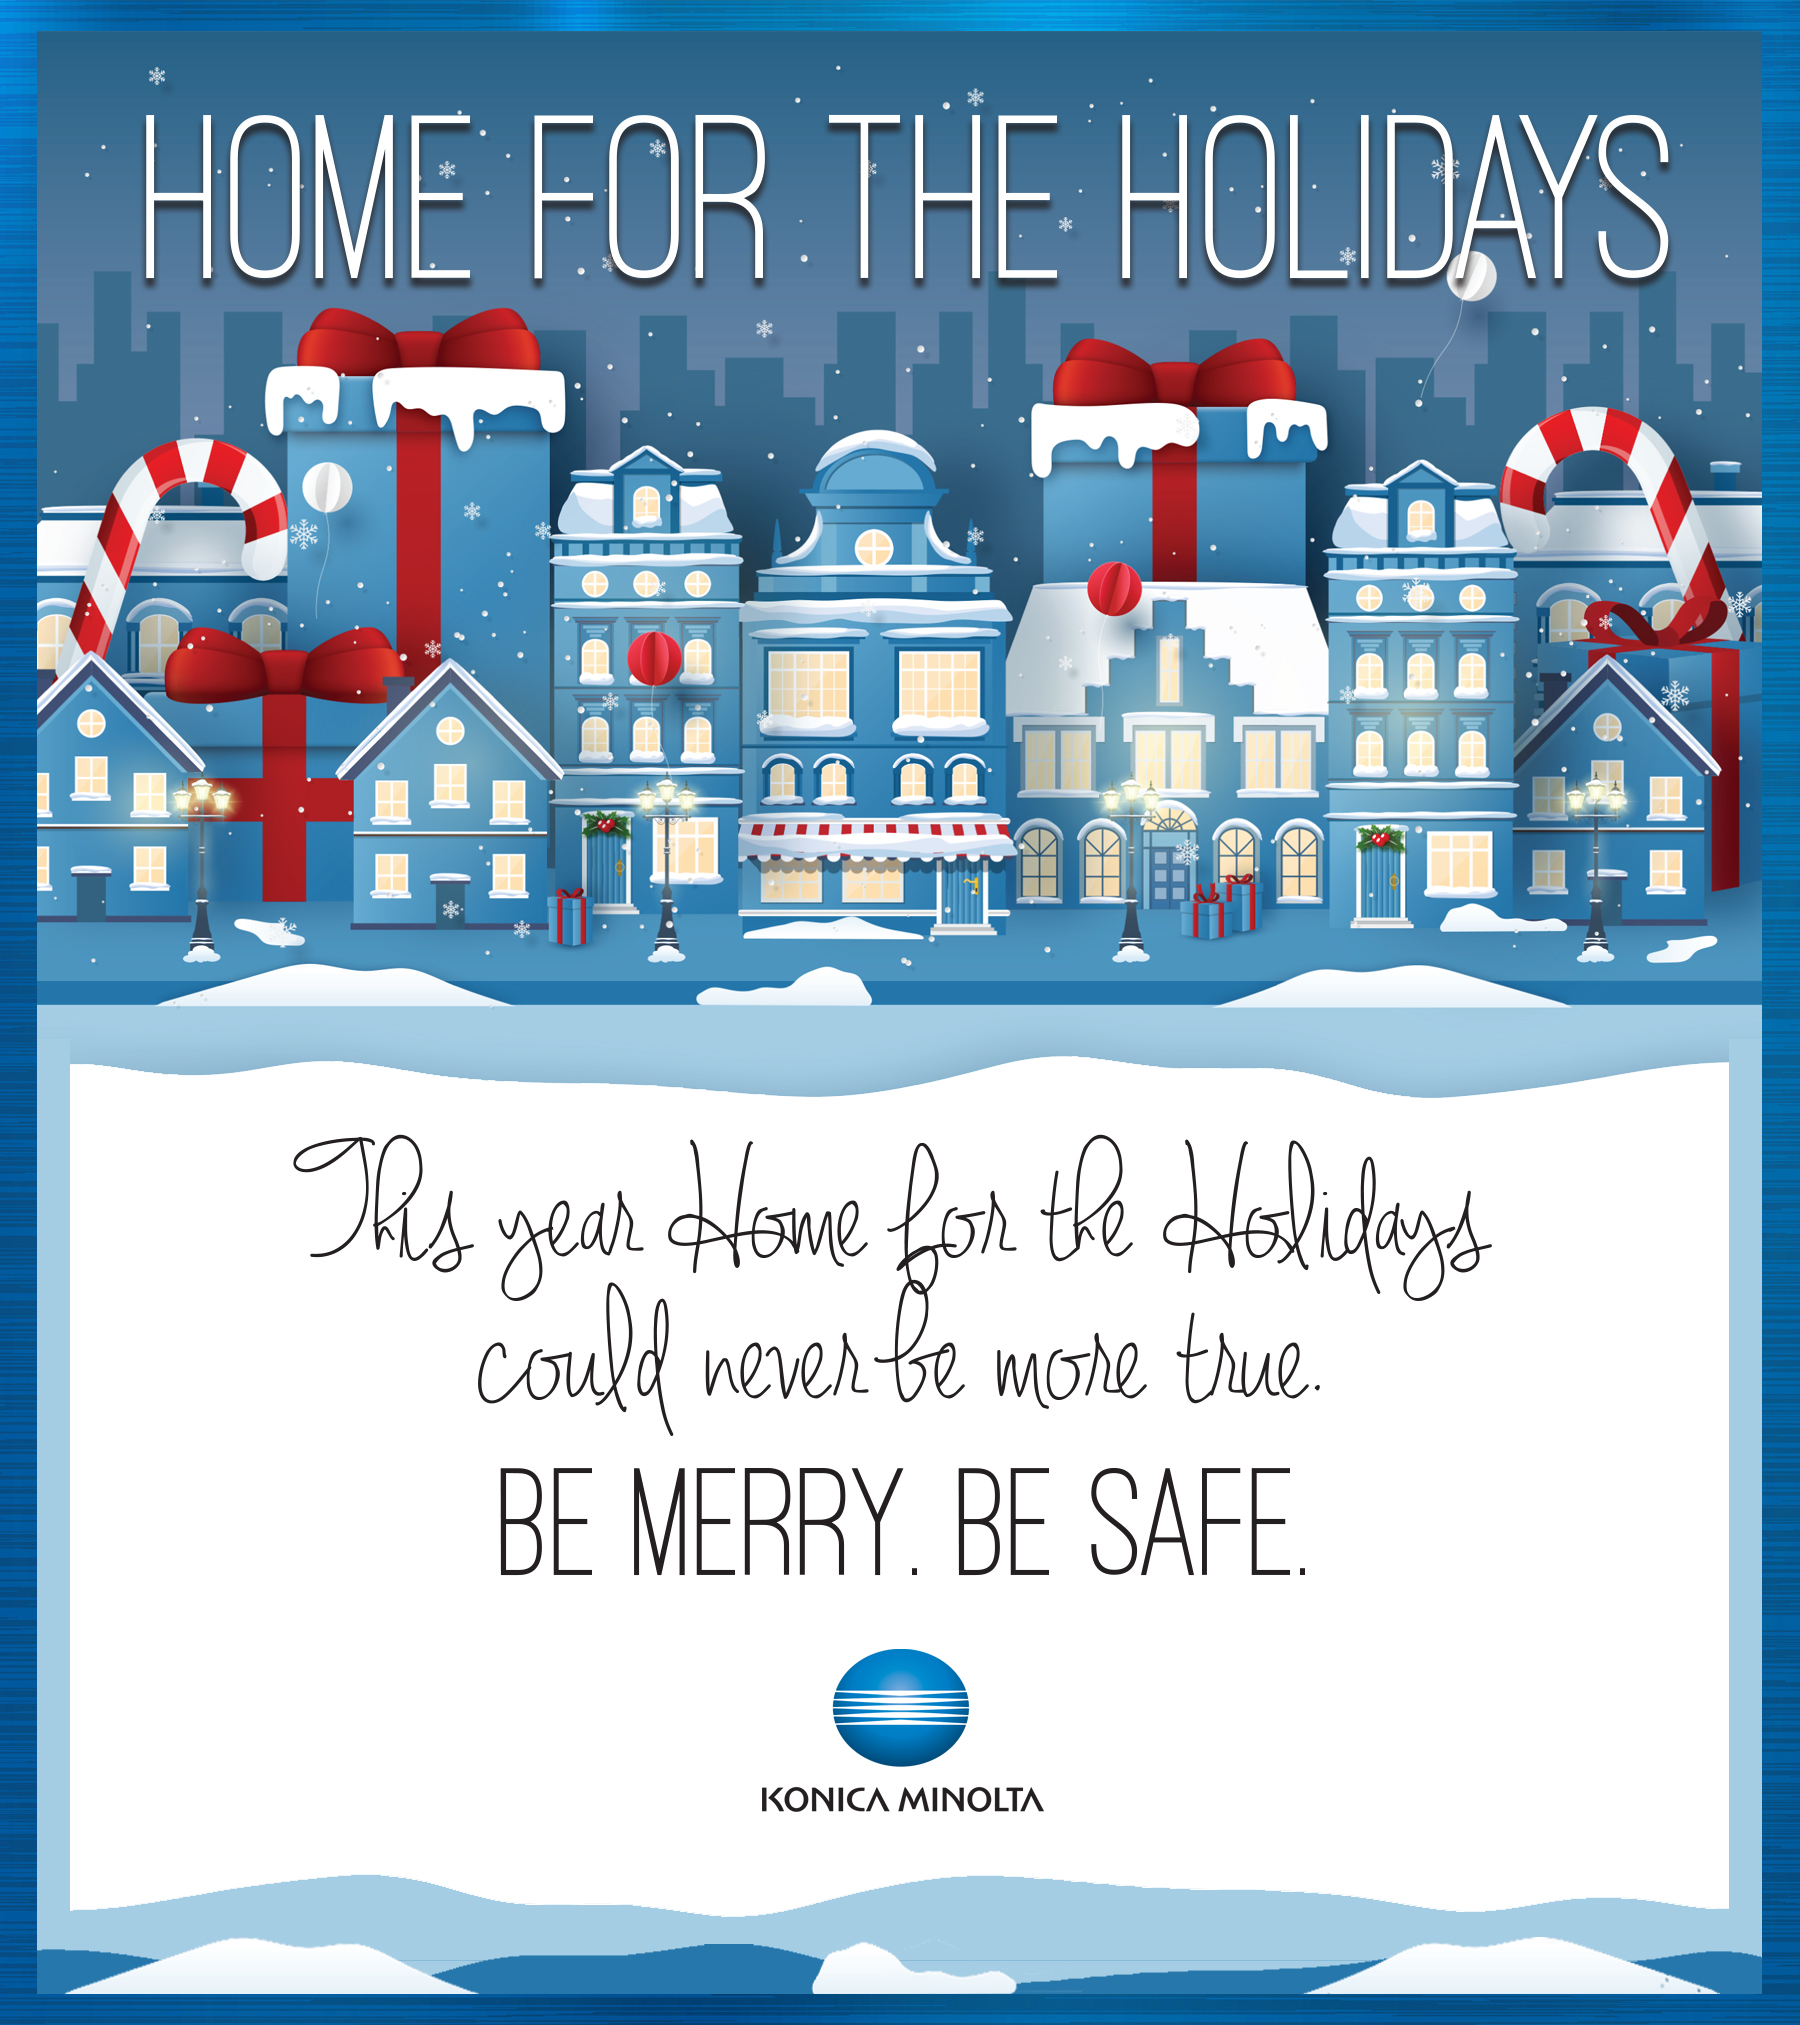 Konica Minolta Holiday Card